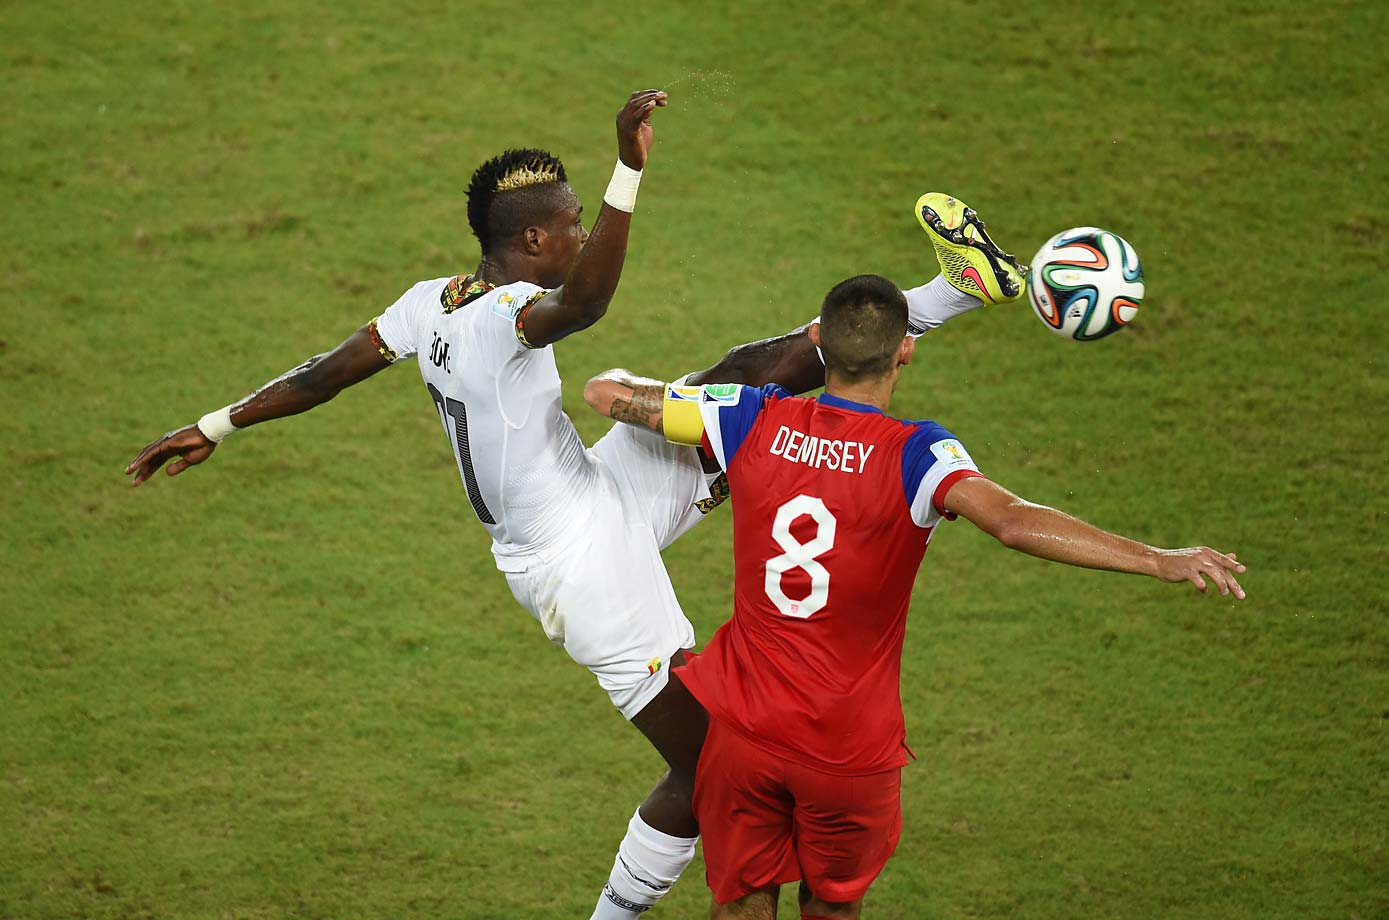 In the first half against Ghana, Clint Dempsey suffered a broken nose after being kicked in the face by the high leg of defender John Boye.